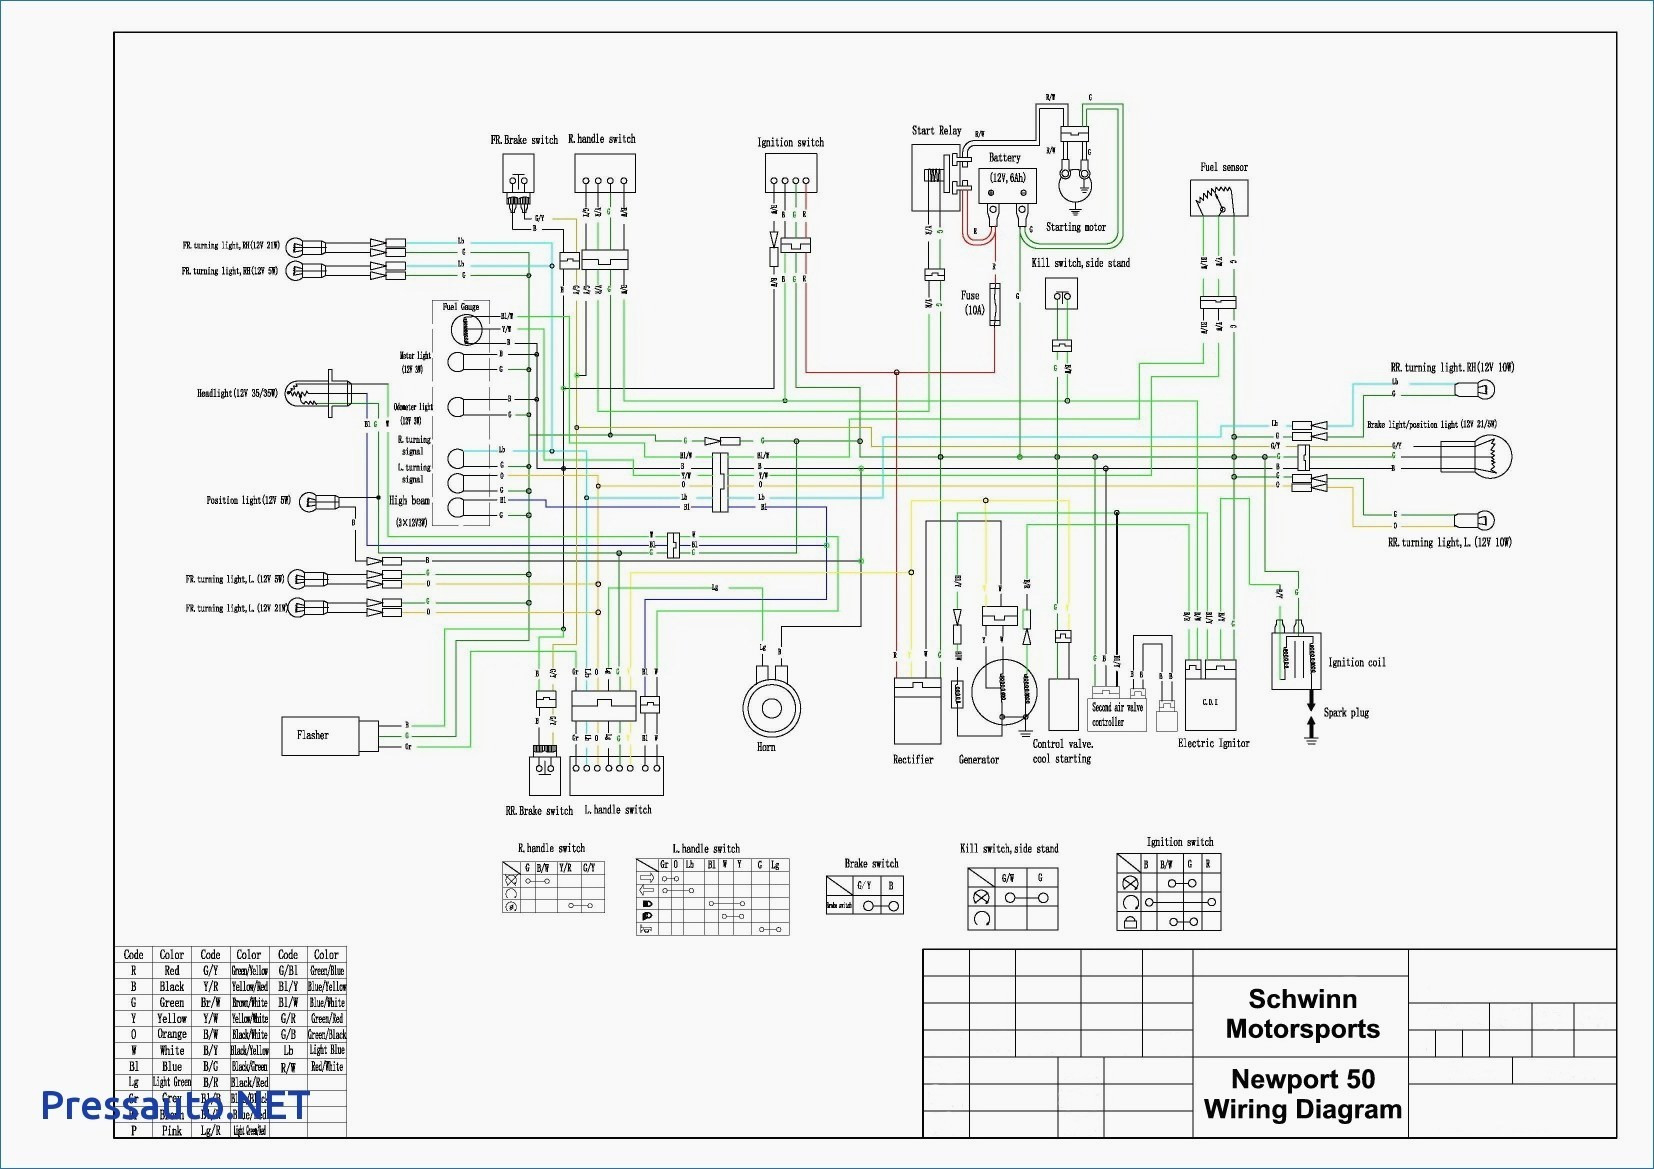 victory vision wiring diagram detailed wiring diagrams rh bunkhousemotelwy com 2006 Victory Vegas Wiring-Diagram Victory Tail Light Wiring Diagram